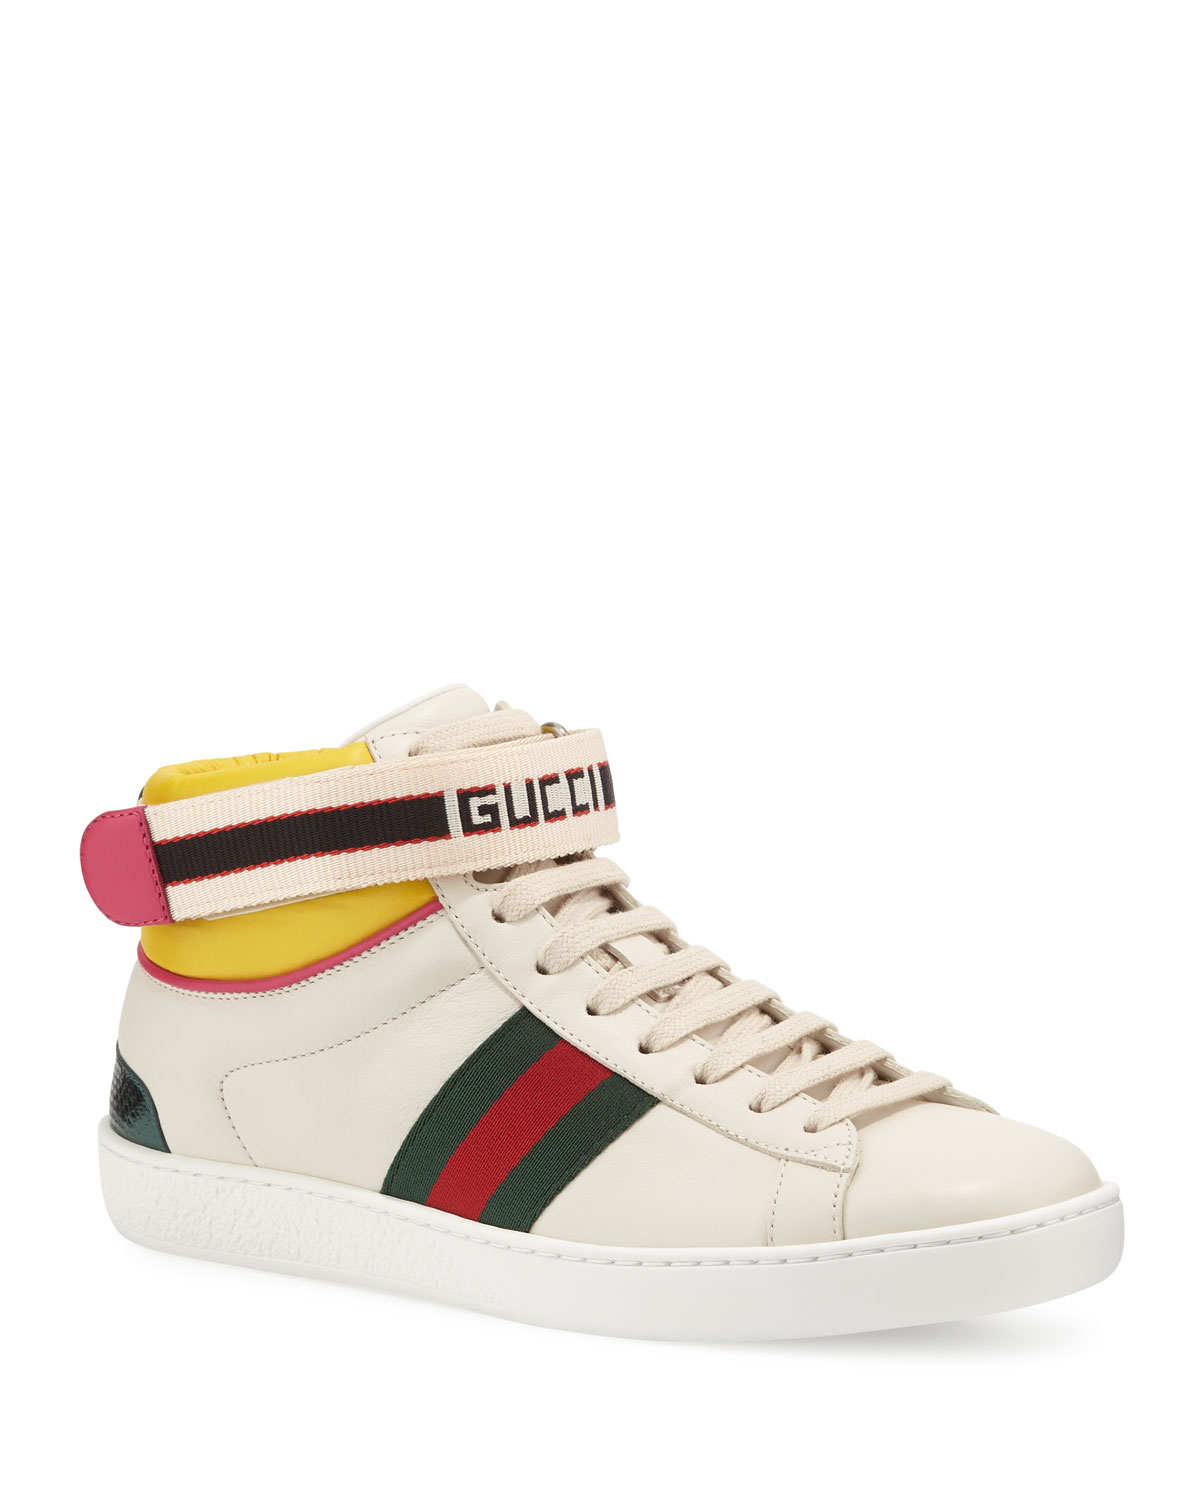 5d8a4a396185 Gucci New Ace High Leather Sneaker With Strap